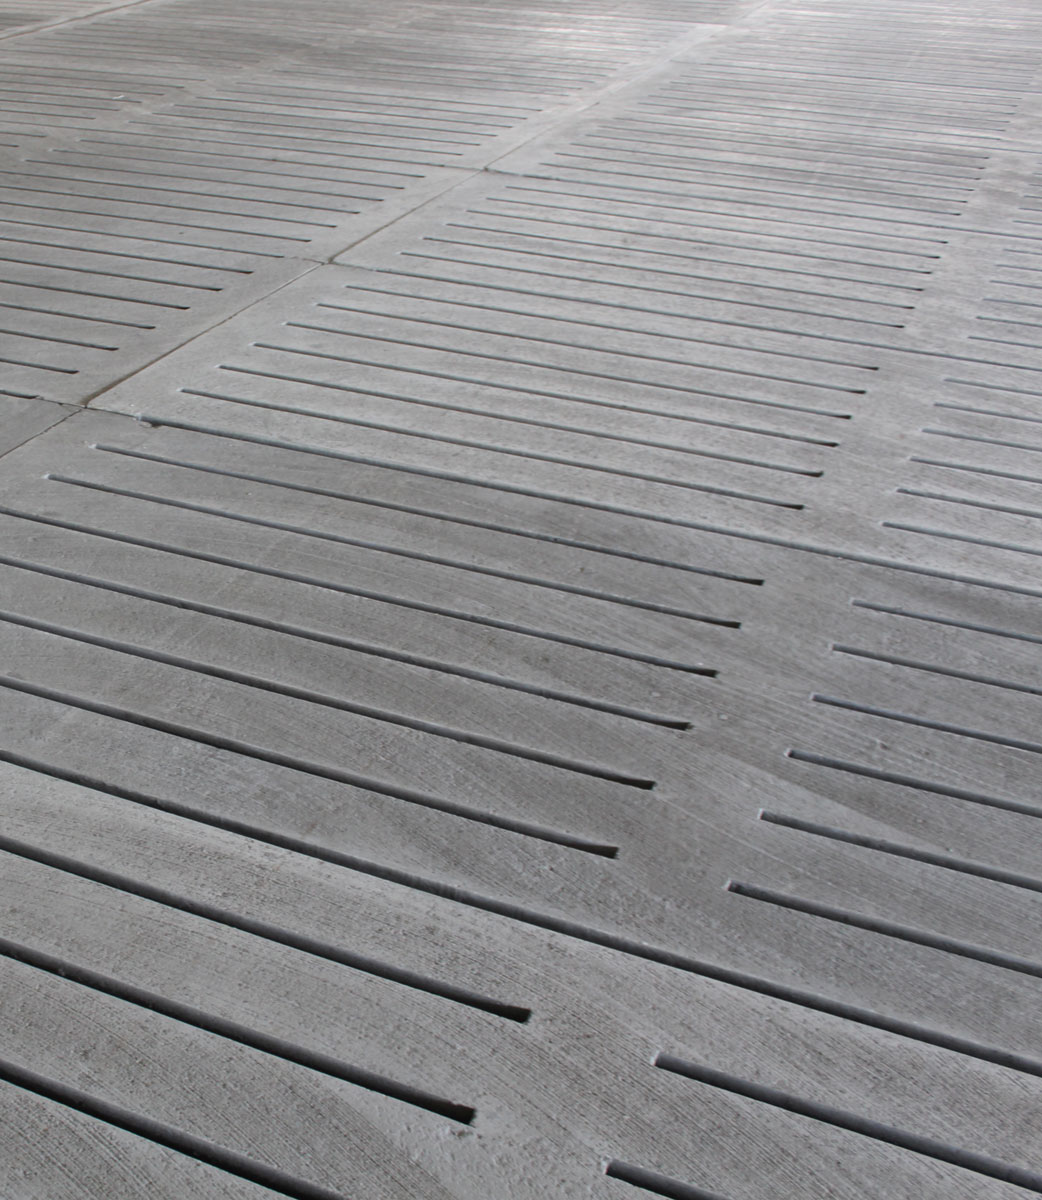 Hog Slat slats are the most superior, high-quality concrete swine flooring solution available on the market for modern pork production facilities.